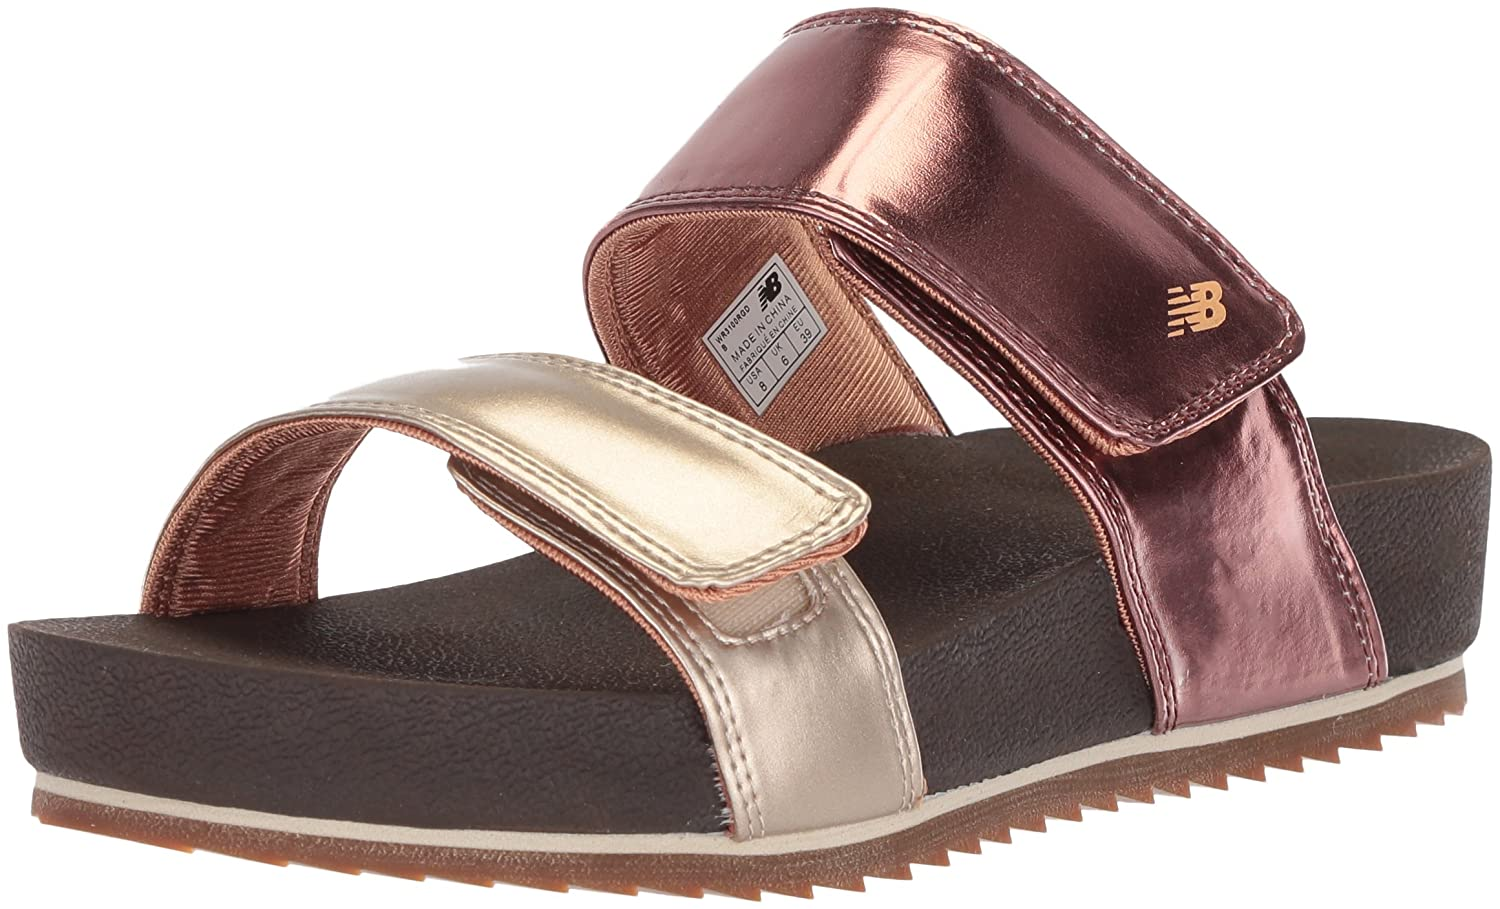 New Balance Women's City Slide Sandal B074JQ26CK 11 B(M) US|Rose Gold